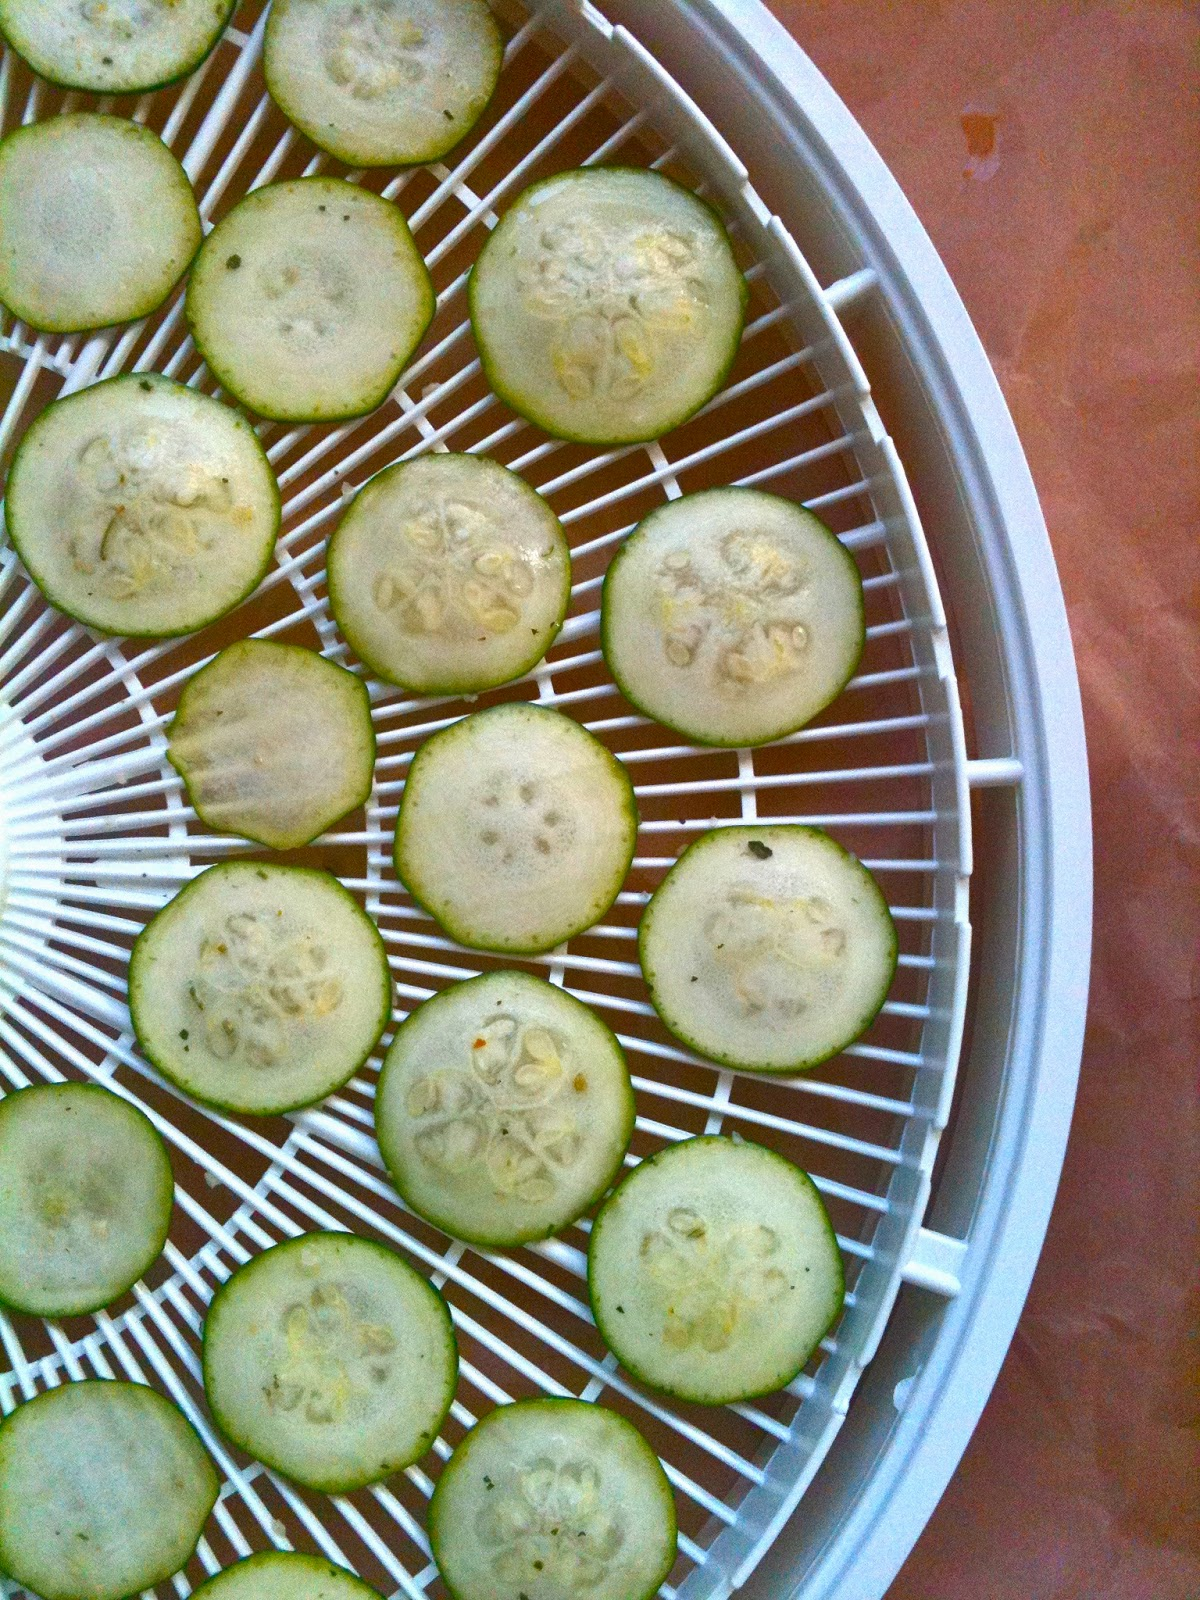 Passionately raw how to dehydrate food without a dehydrator dehydrating zucchini forumfinder Images